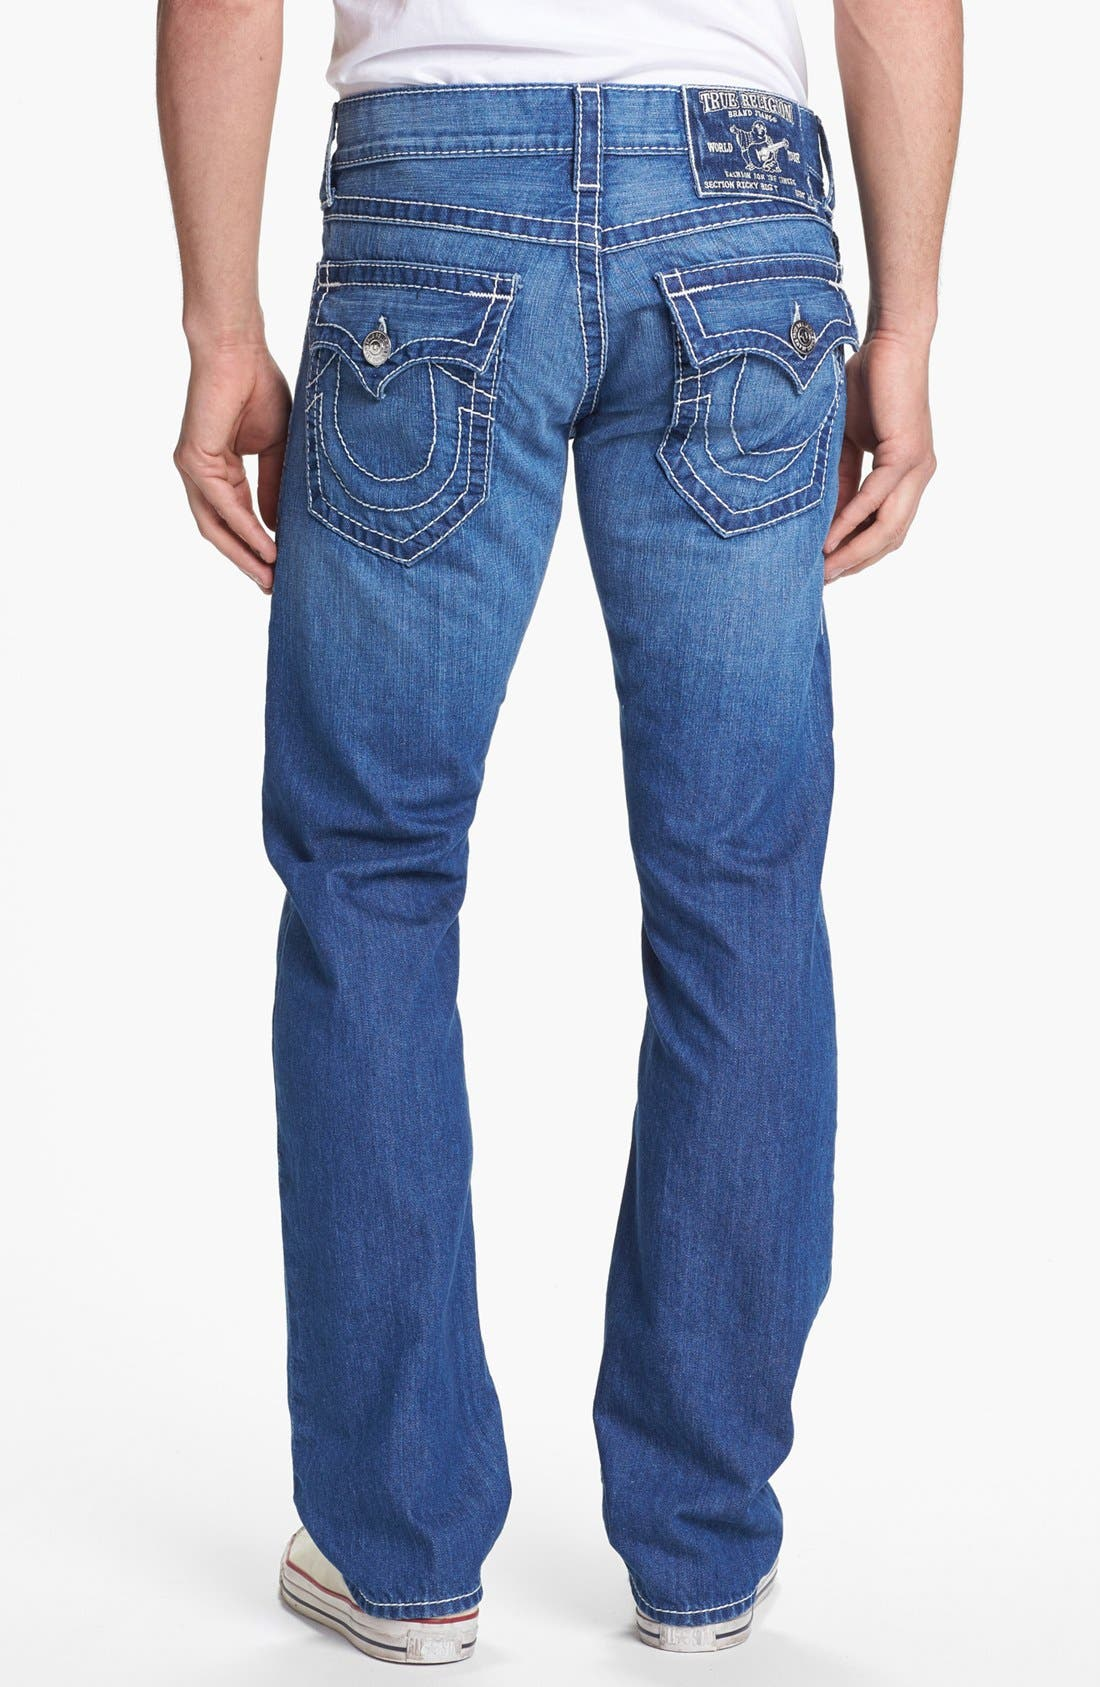 Main Image - True Religion Brand Jeans 'Ricky' Straight Leg Jeans (Voyager)